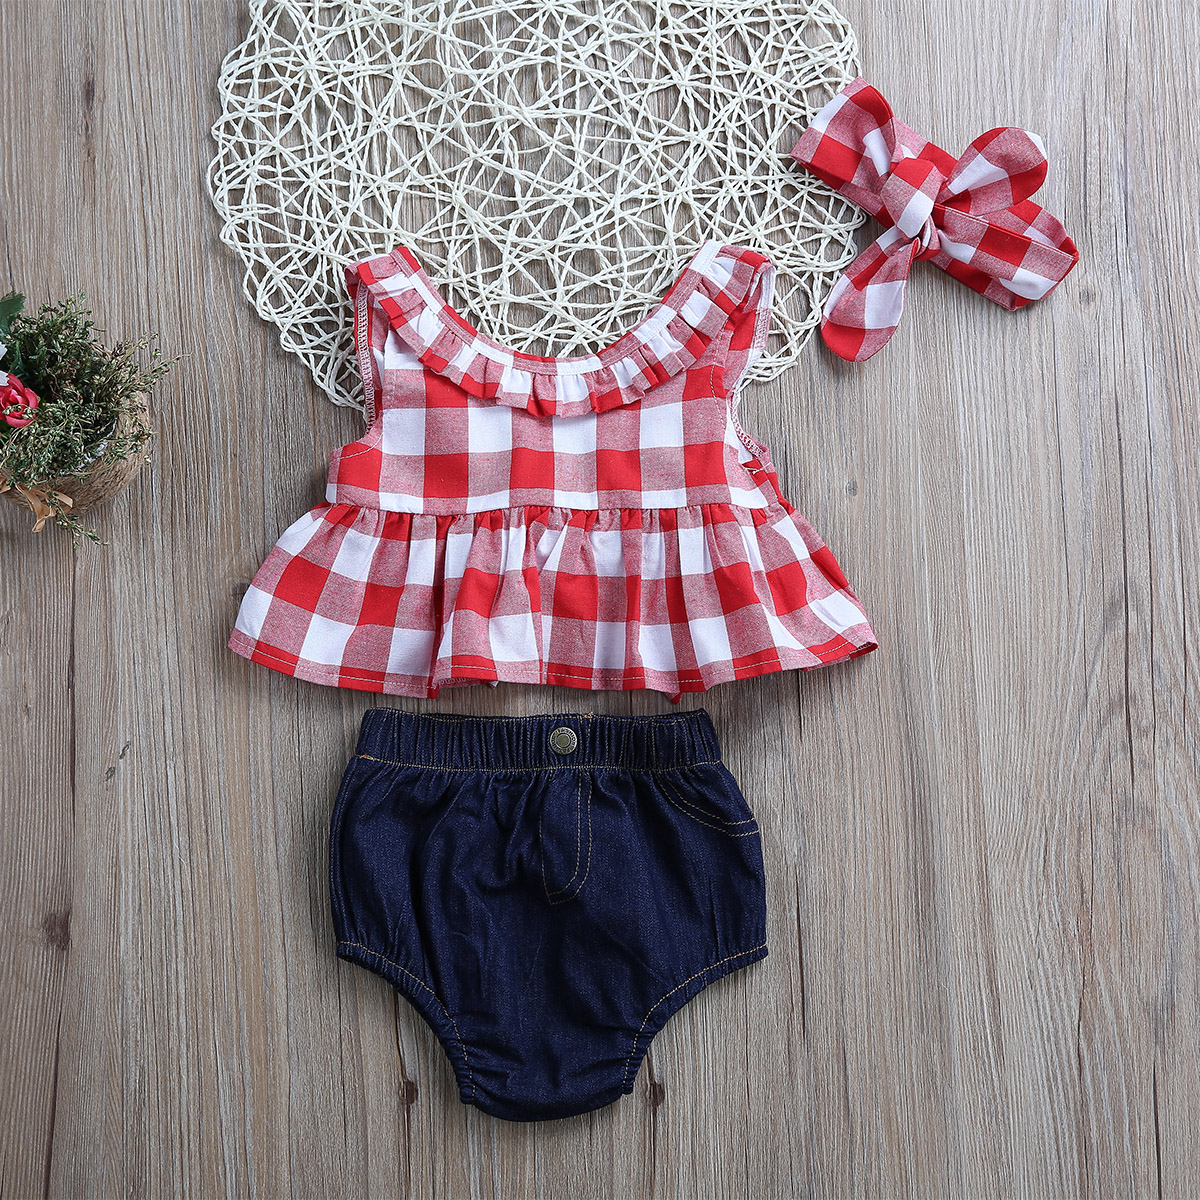 Tops-Sleeveless-Plaid-T-Shirts-Jeans-Shorts-Headband-Kids-Clothing-Outfits-Infant-Kids-Baby-Girls-Clothes-Sets-Outfit-Sleeveless-2